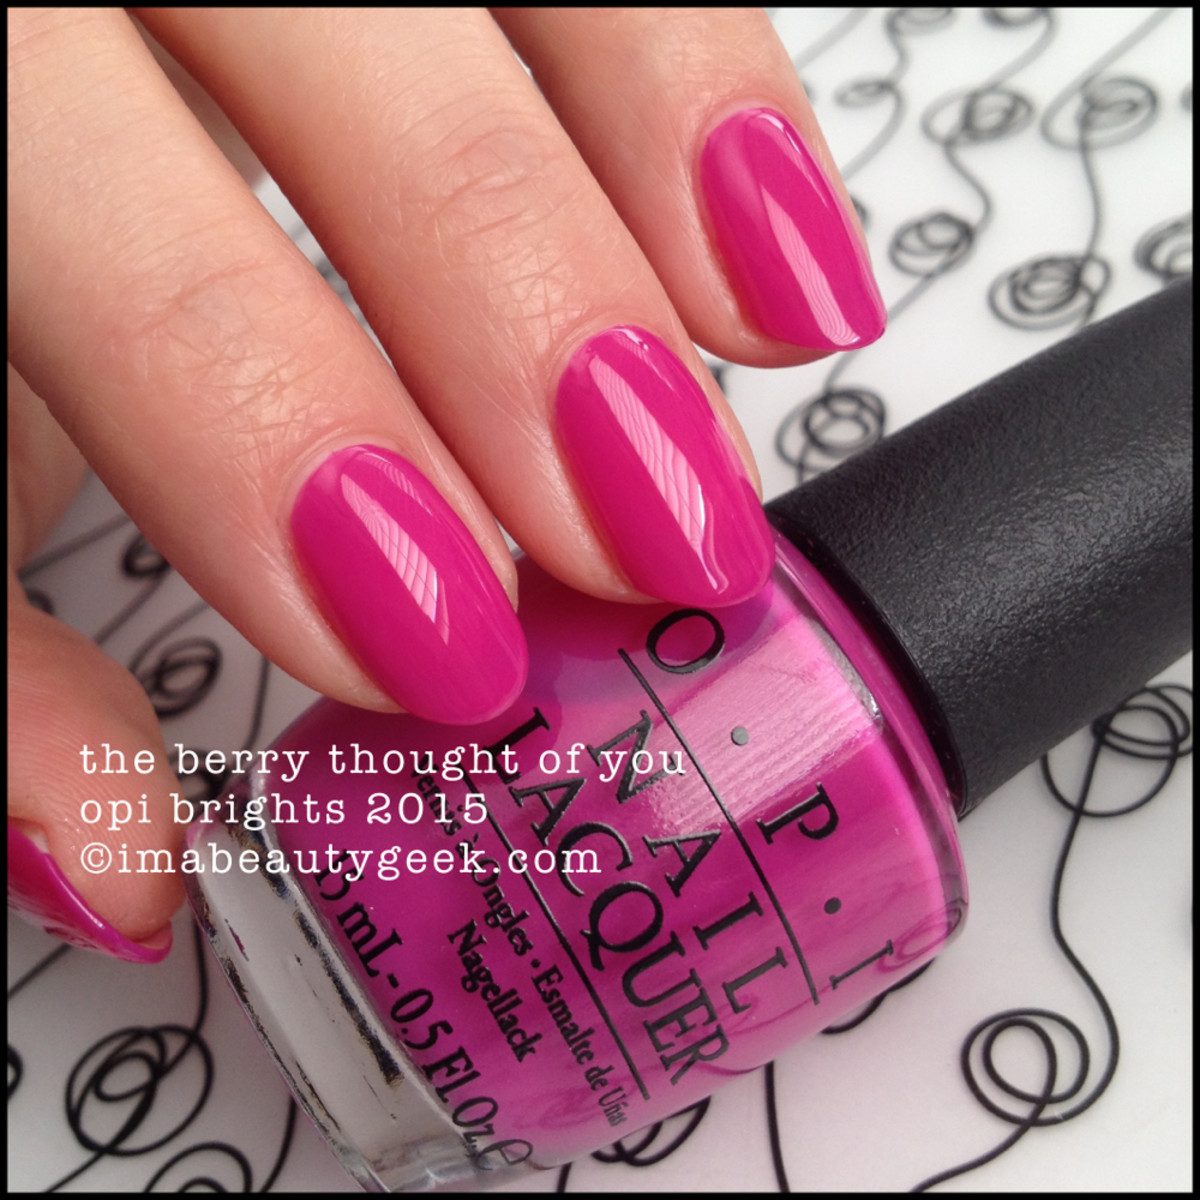 OPI Brights 2015_OPI The Berry Thought of You_1